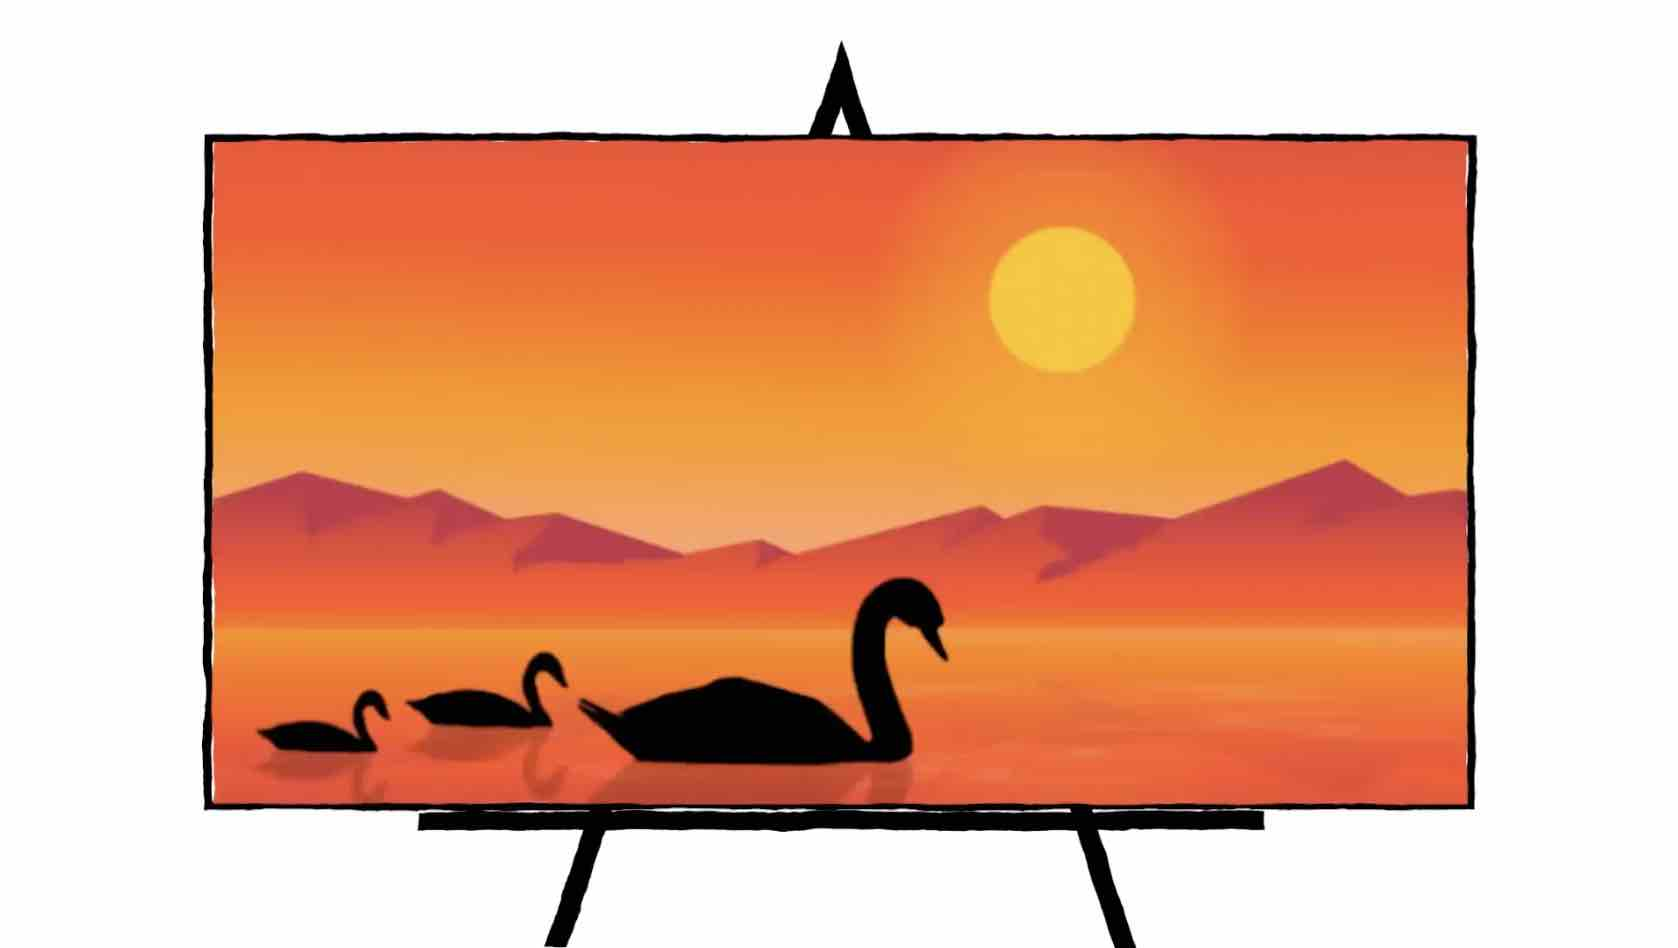 Silhouette Swans Landscape painting lots of orange, yellow and red colors